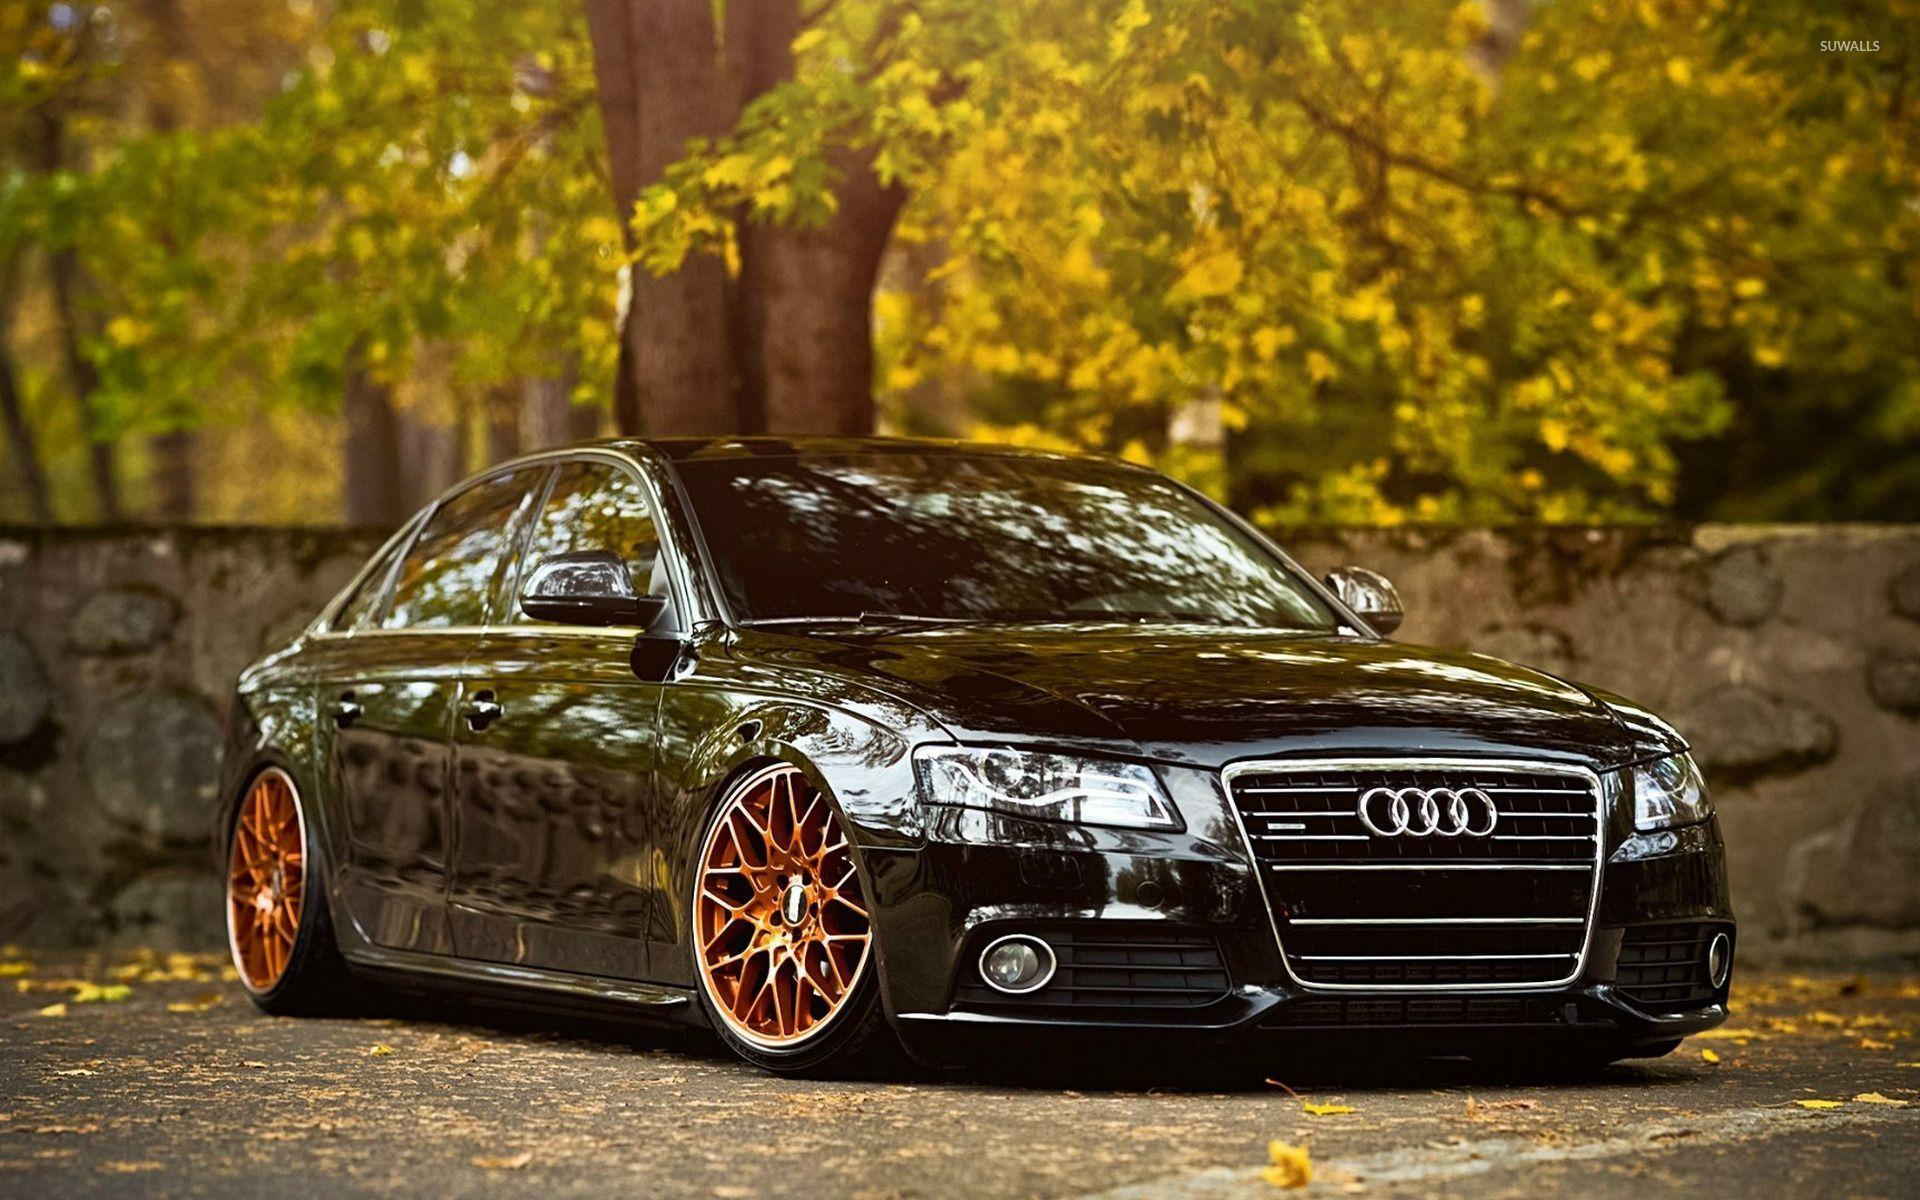 Audi A4 wallpapers